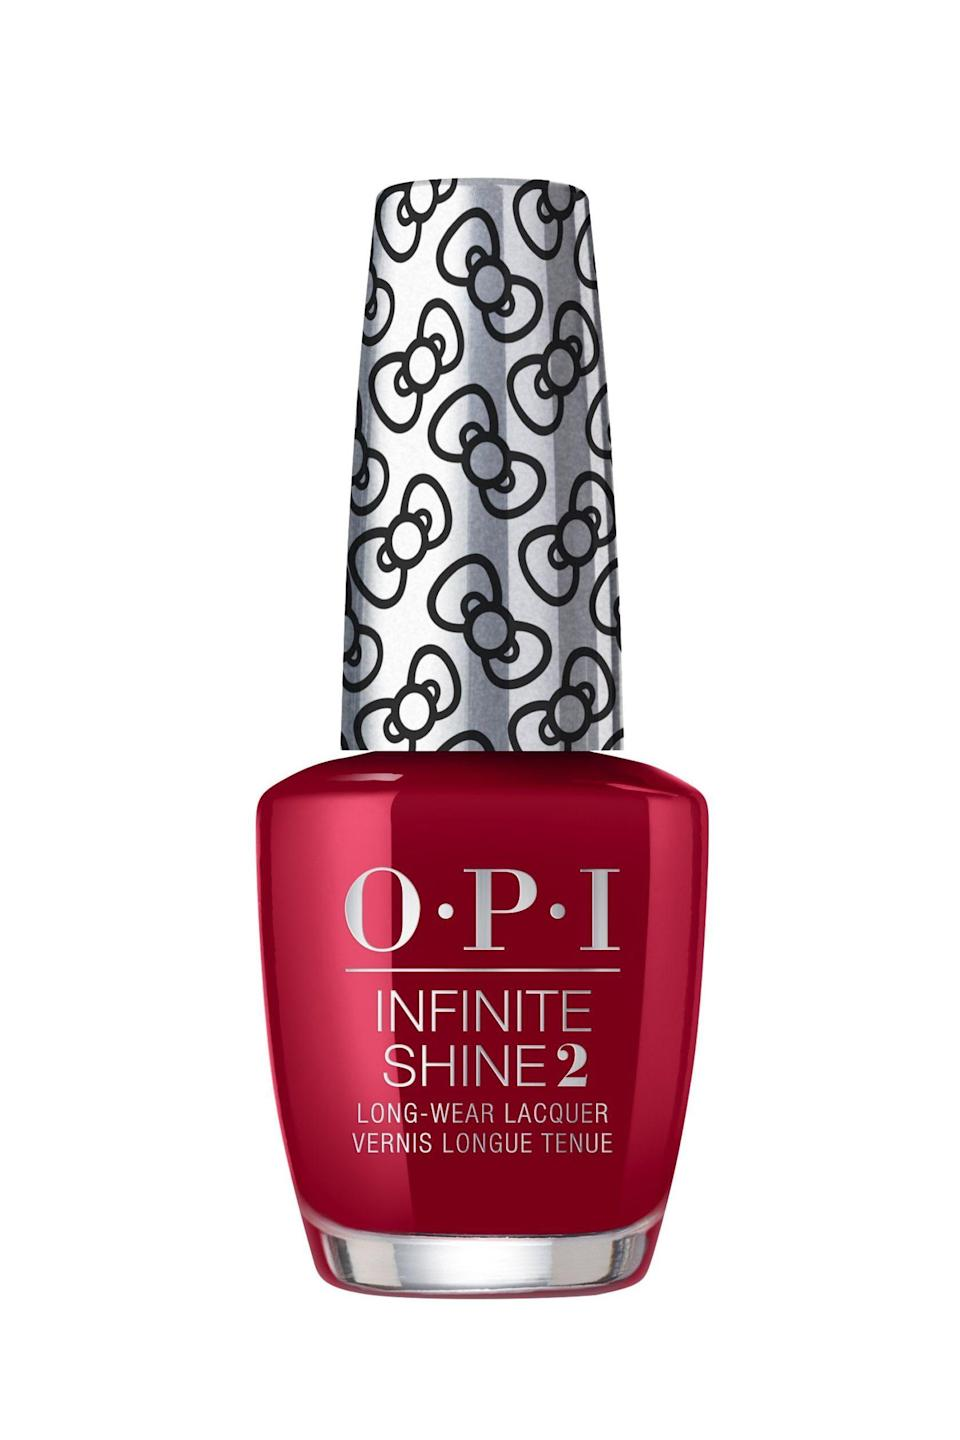 """<p><strong>OPI</strong></p><p>ulta.com</p><p><strong>$100.00</strong></p><p><a href=""""https://go.redirectingat.com?id=74968X1596630&url=https%3A%2F%2Fwww.ulta.com%2Fhello-kitty-infinite-shine-collection%3FproductId%3Dpimprod2008932&sref=https%3A%2F%2Fwww.marieclaire.com%2Fbeauty%2Fnews%2Fg3310%2Fbest-nail-colors-winter%2F"""" rel=""""nofollow noopener"""" target=""""_blank"""" data-ylk=""""slk:SHOP IT"""" class=""""link rapid-noclick-resp"""">SHOP IT</a></p><p>Like a pour of your favorite full-body Cabernet, this rich burgundy will never do you wrong. It's a classic hue that will complement all complexions, and go gorgeously with your Christmas decor if you're really feeling the holiday spirit. </p>"""